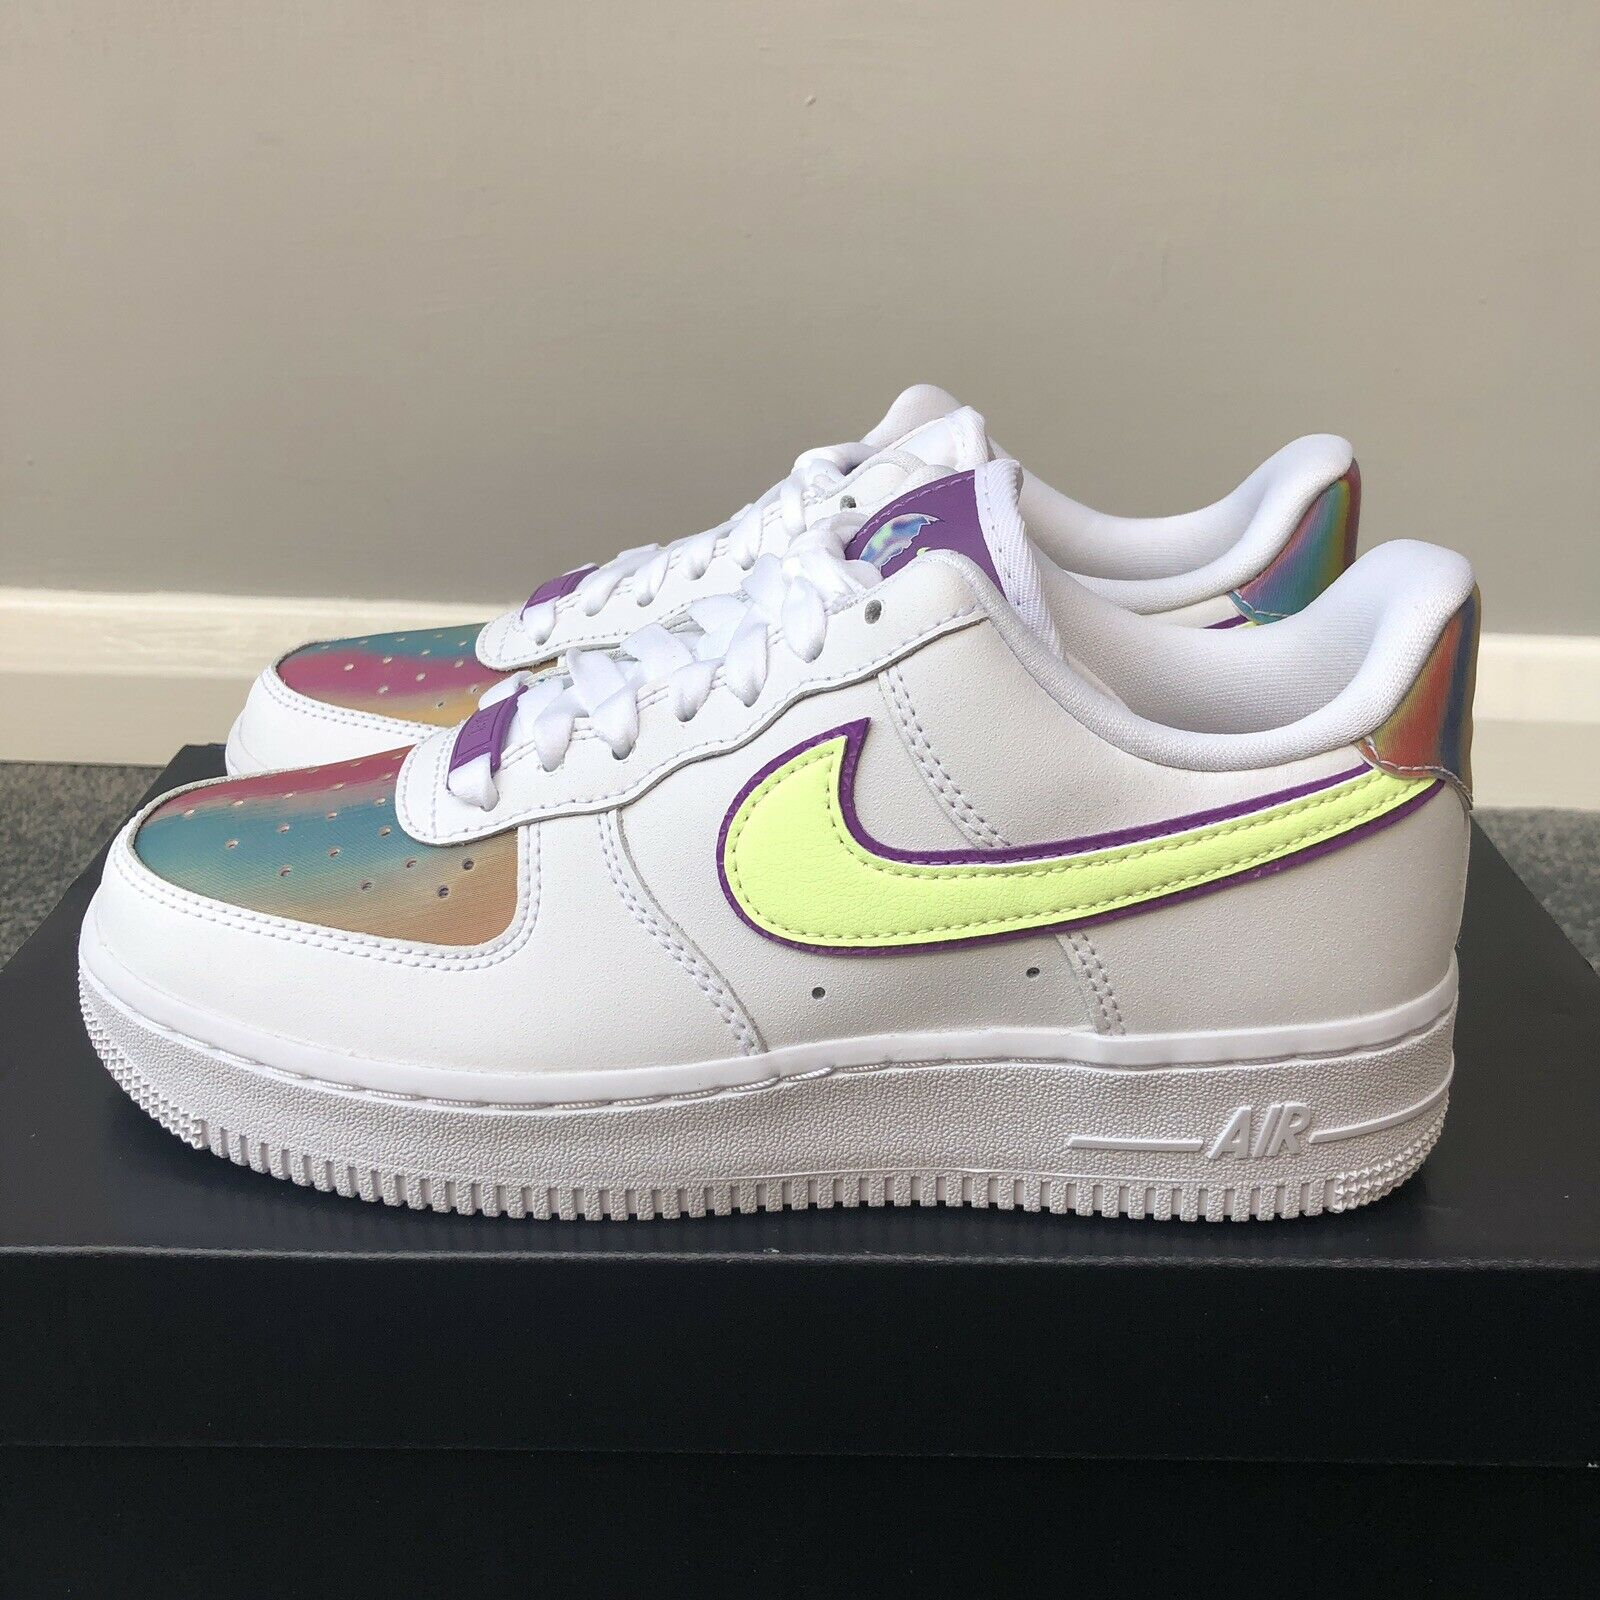 Nike Air Force 1 Low Easter W 2020